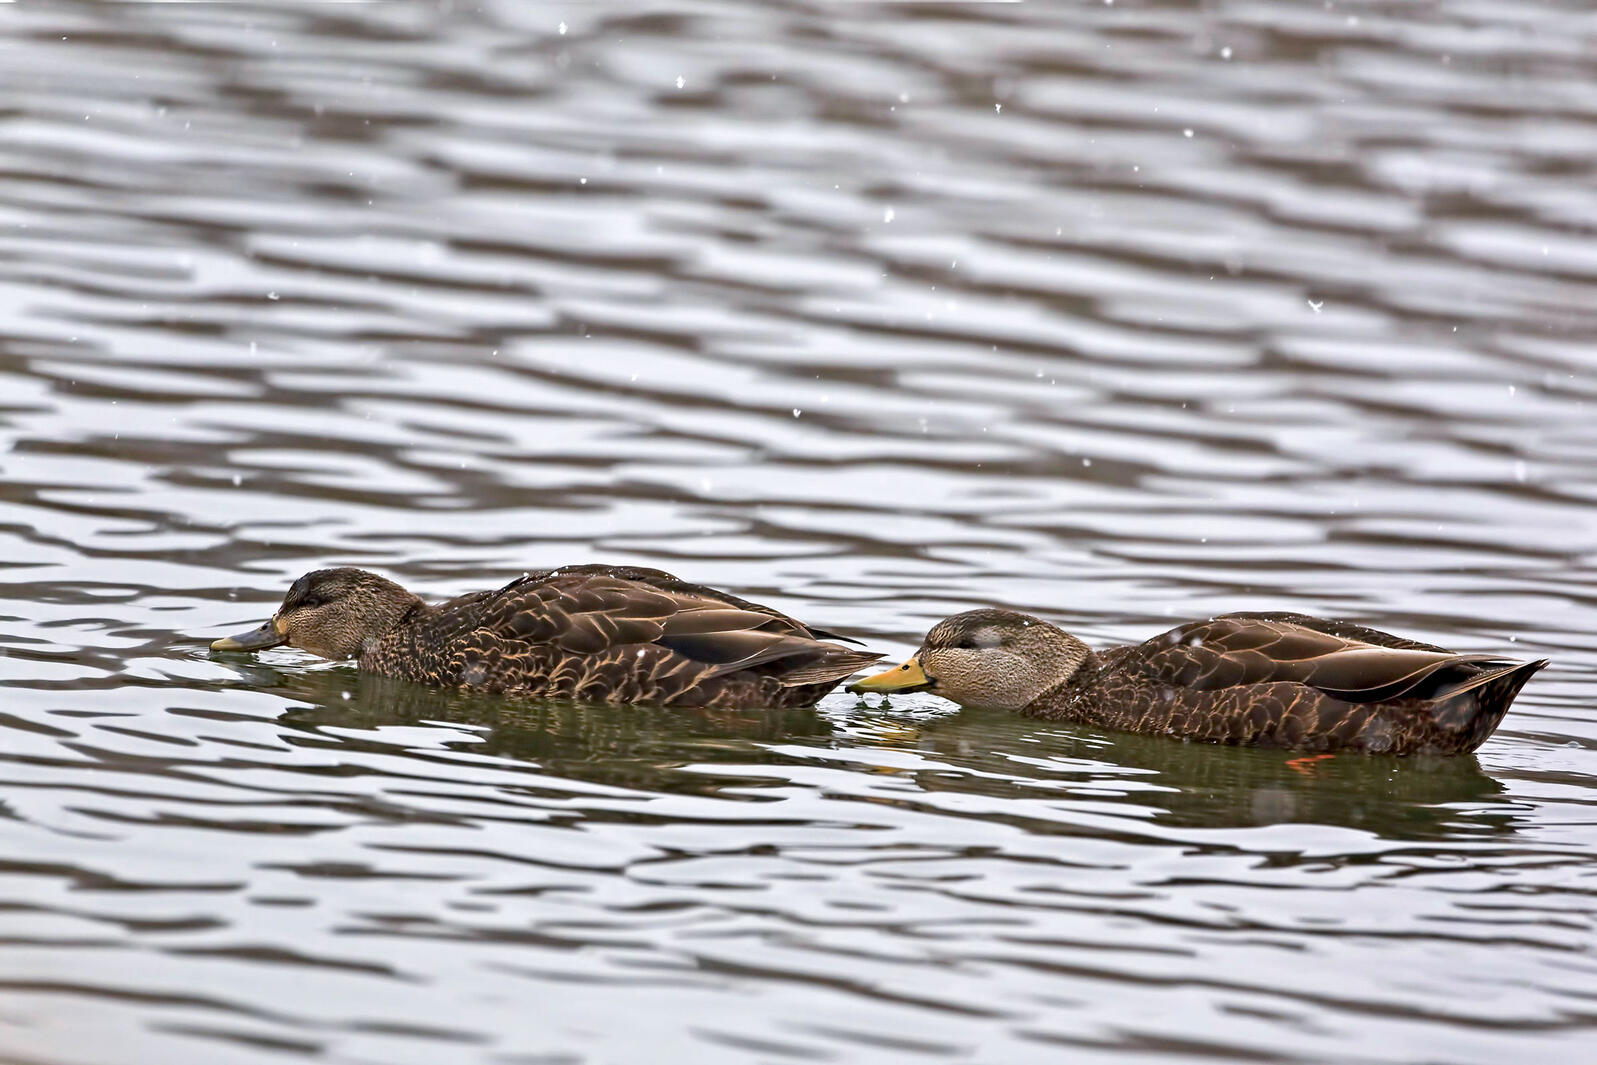 American Black Ducks are one of the species seeing a shift north as temperatures rise. Harold Stiver/Alamy